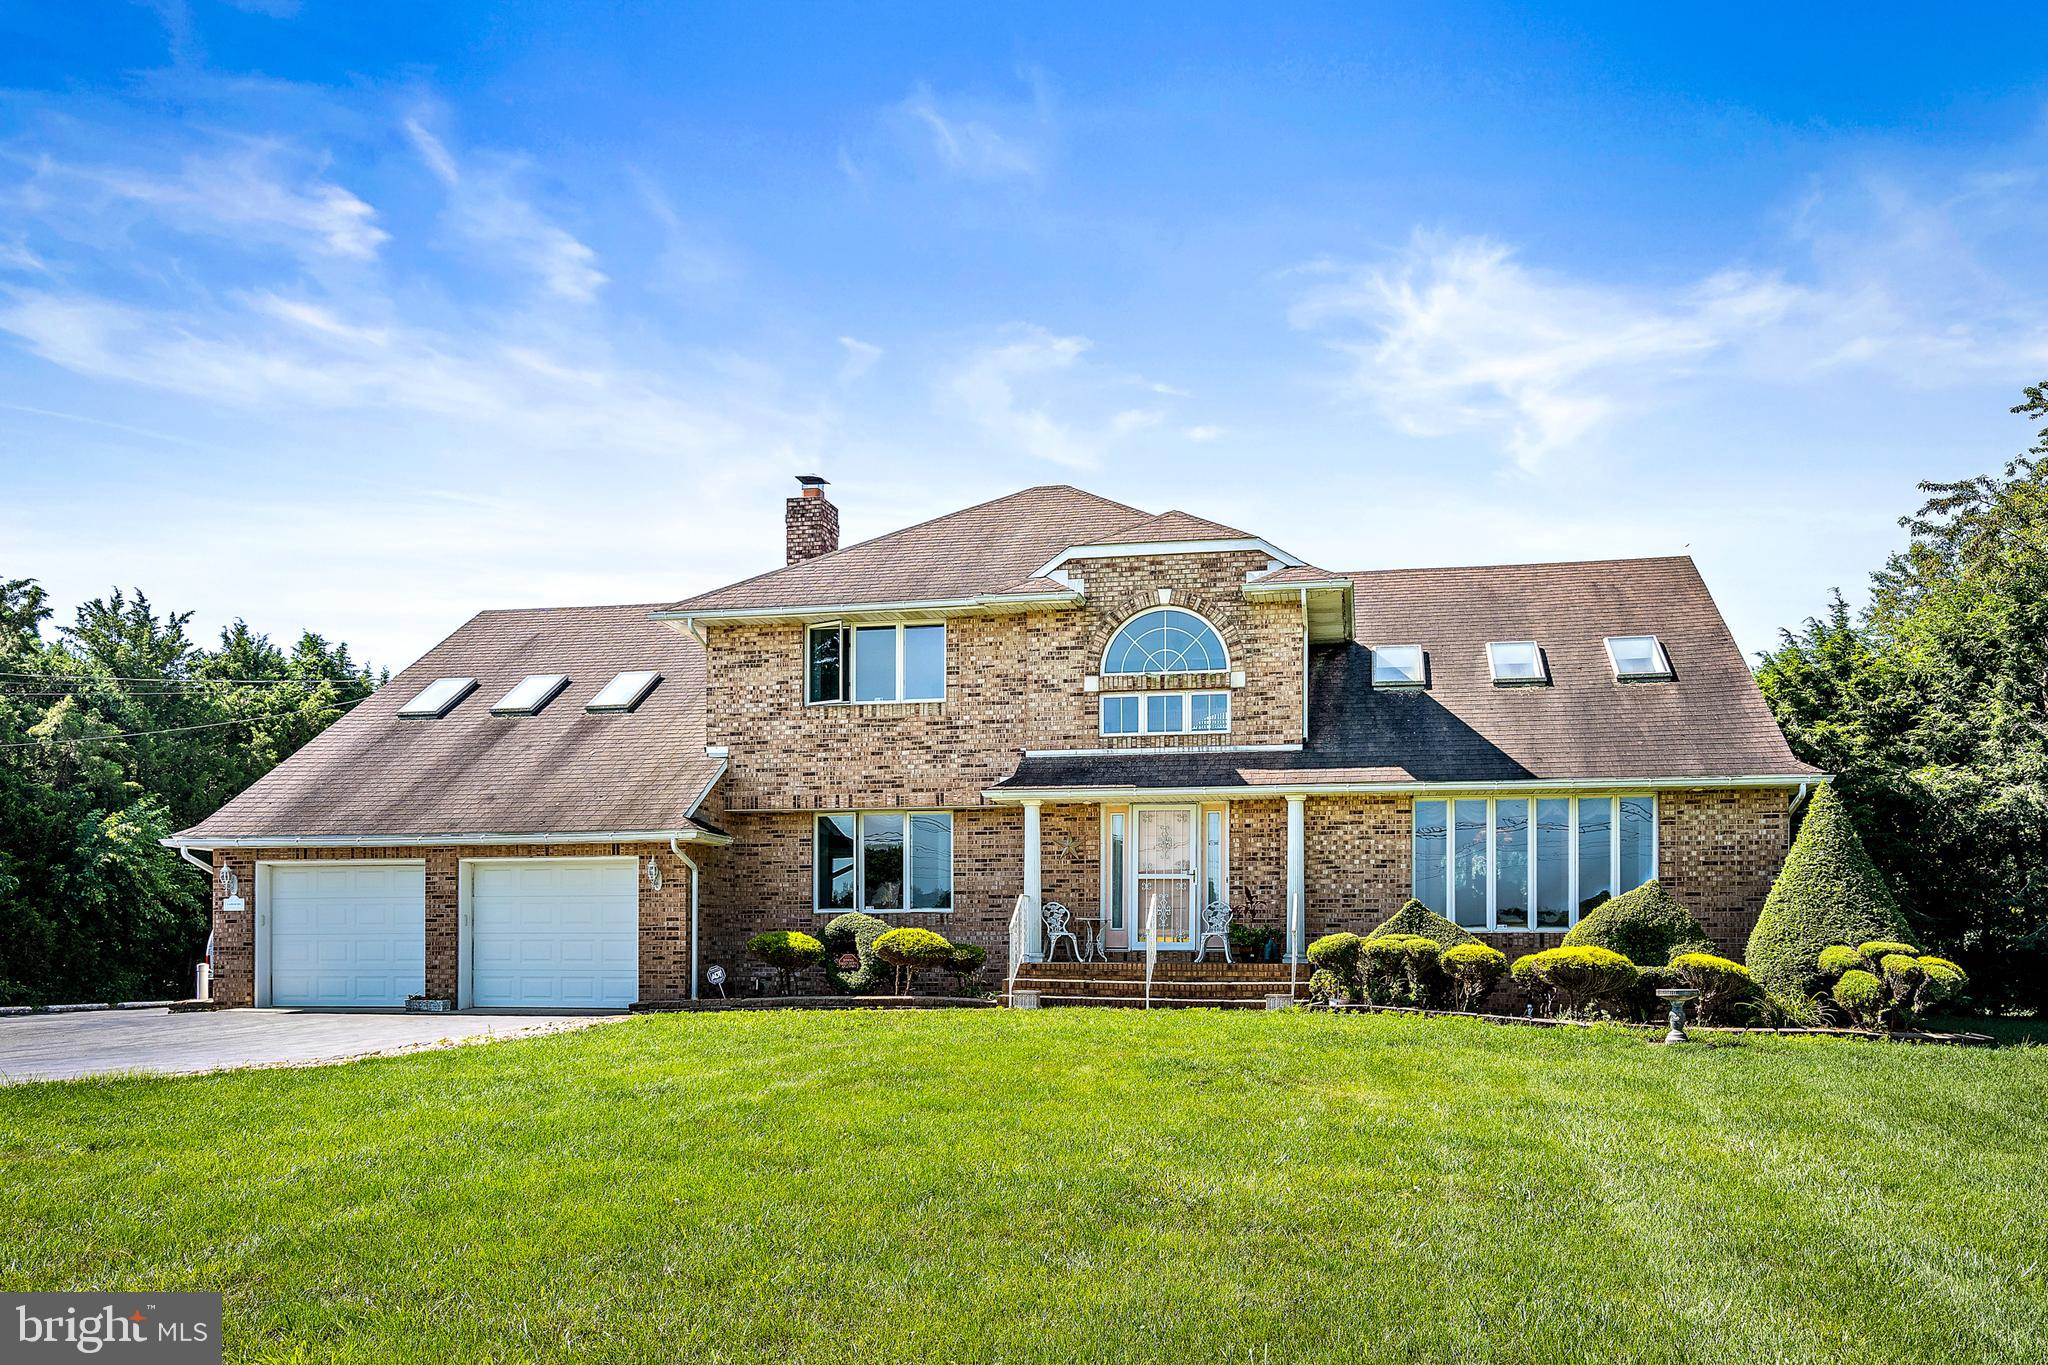 4709 TRENTO AVENUE, VINELAND, NJ 08361